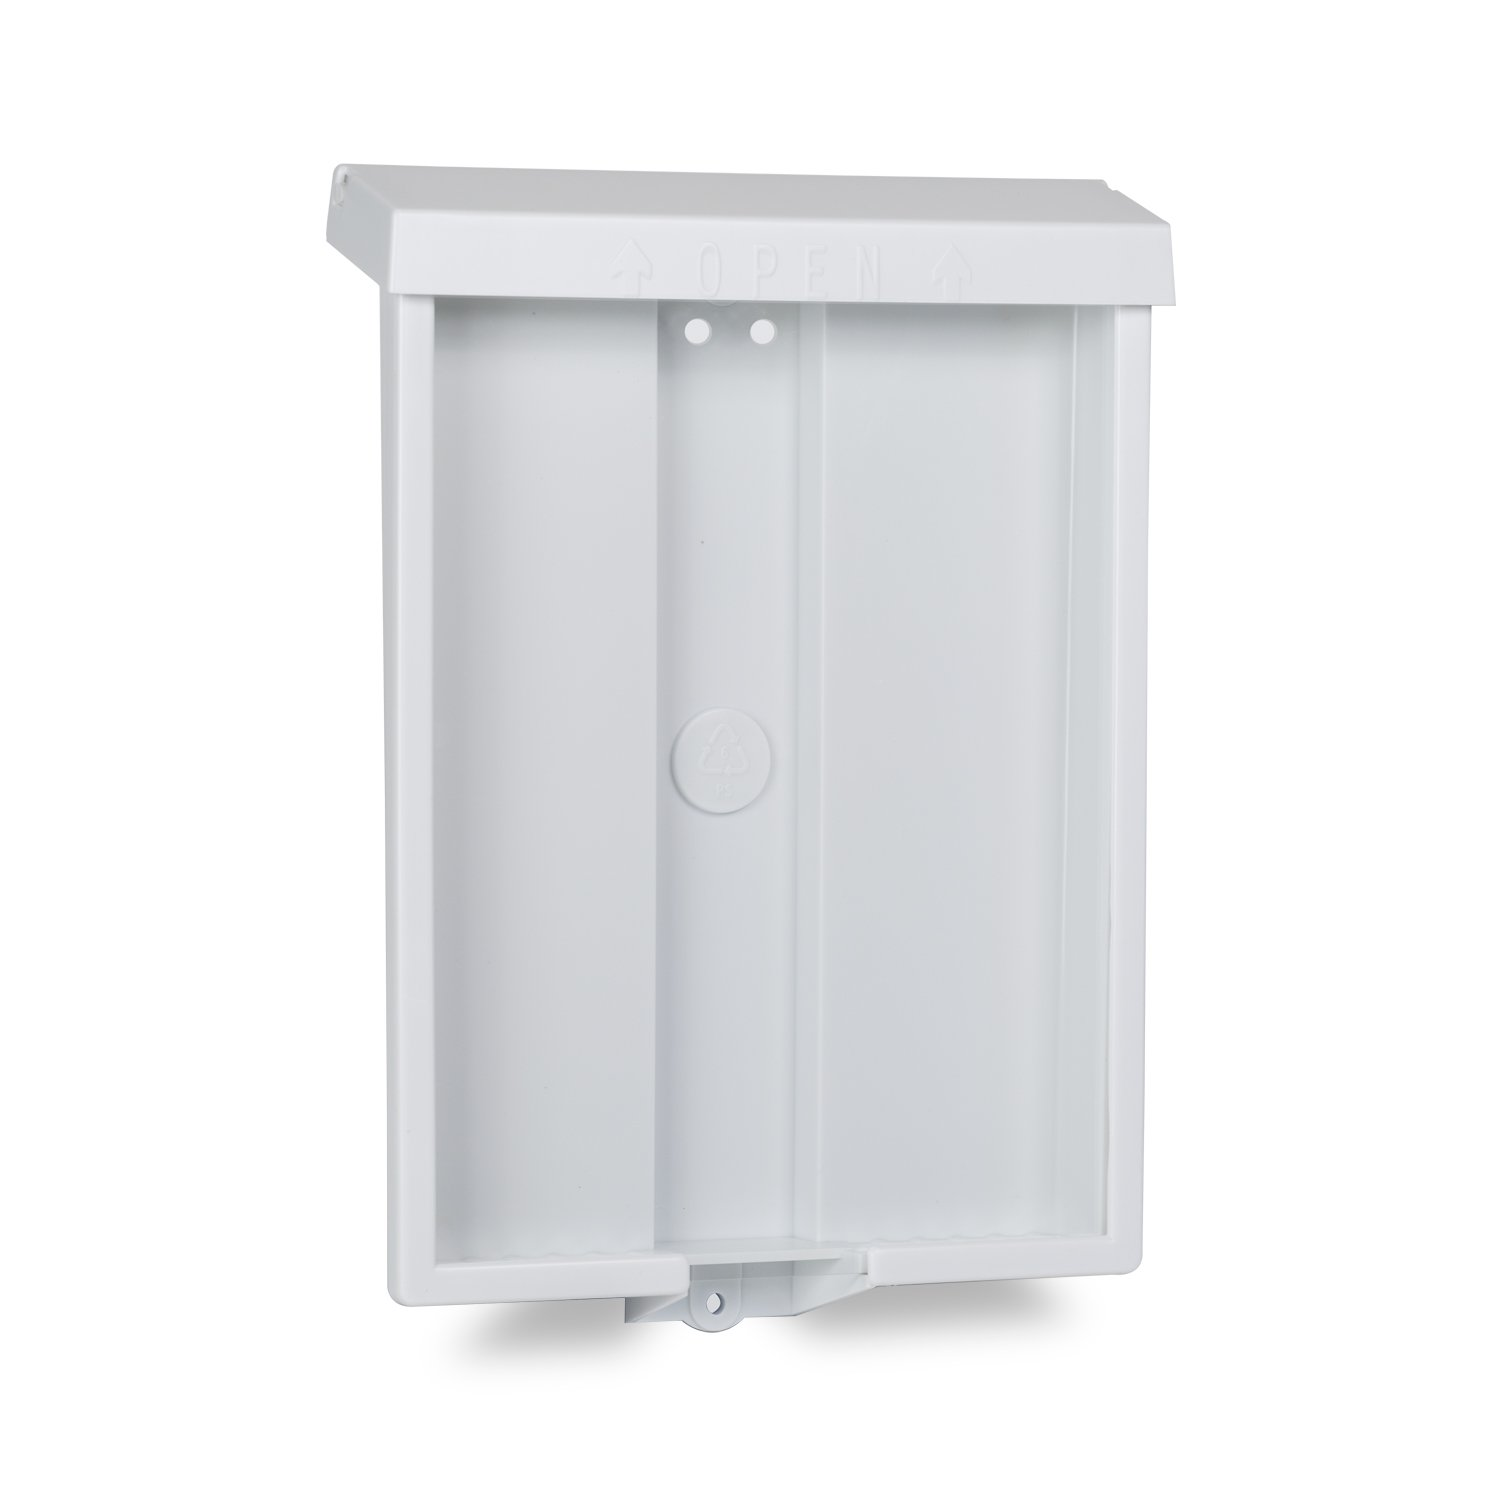 Source One Outdoor Realtor Style Brochure Holder Color Variety White or Black Options Available (6 Pack, White) by SOURCEONE.ORG (Image #2)